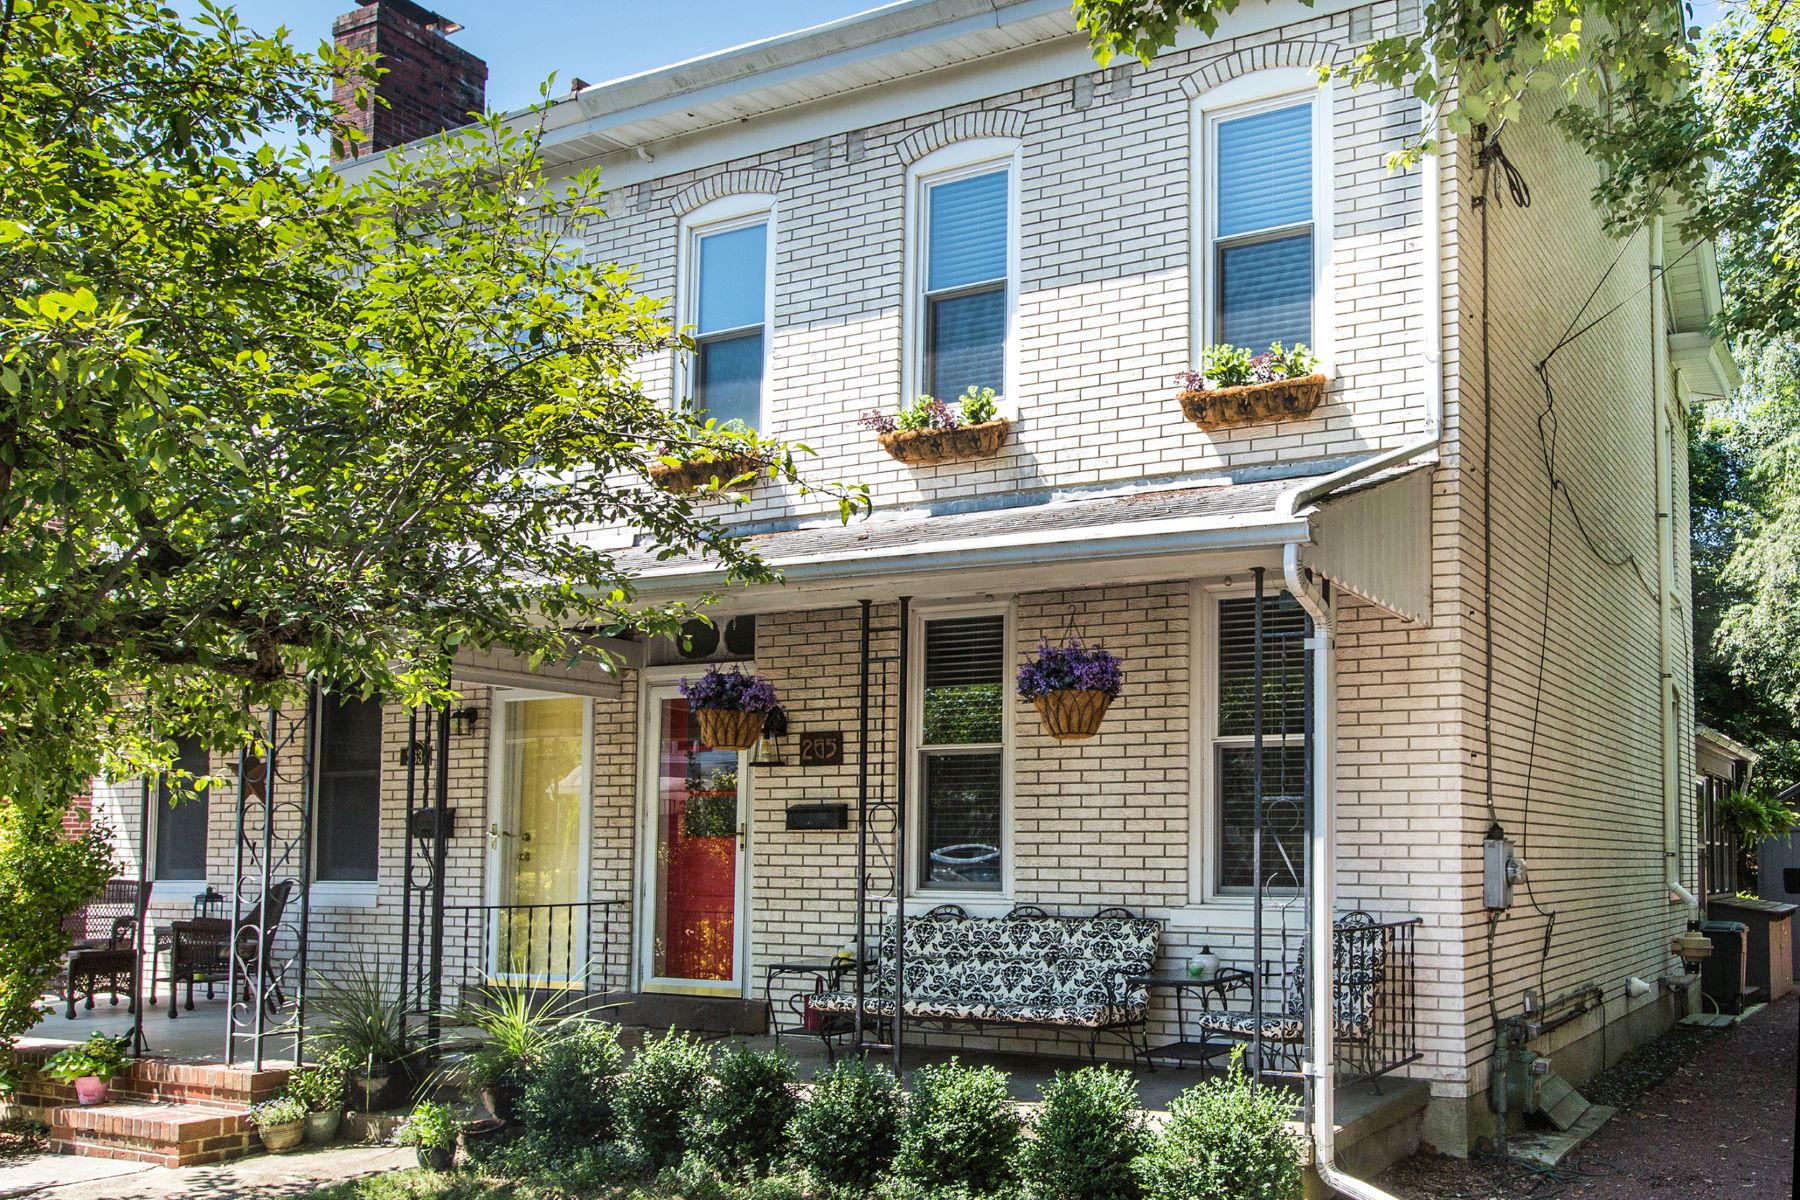 Single Family Home for Sale at Union Street Gem 265 N UNION ST, Lambertville, New Jersey, 08530 United States